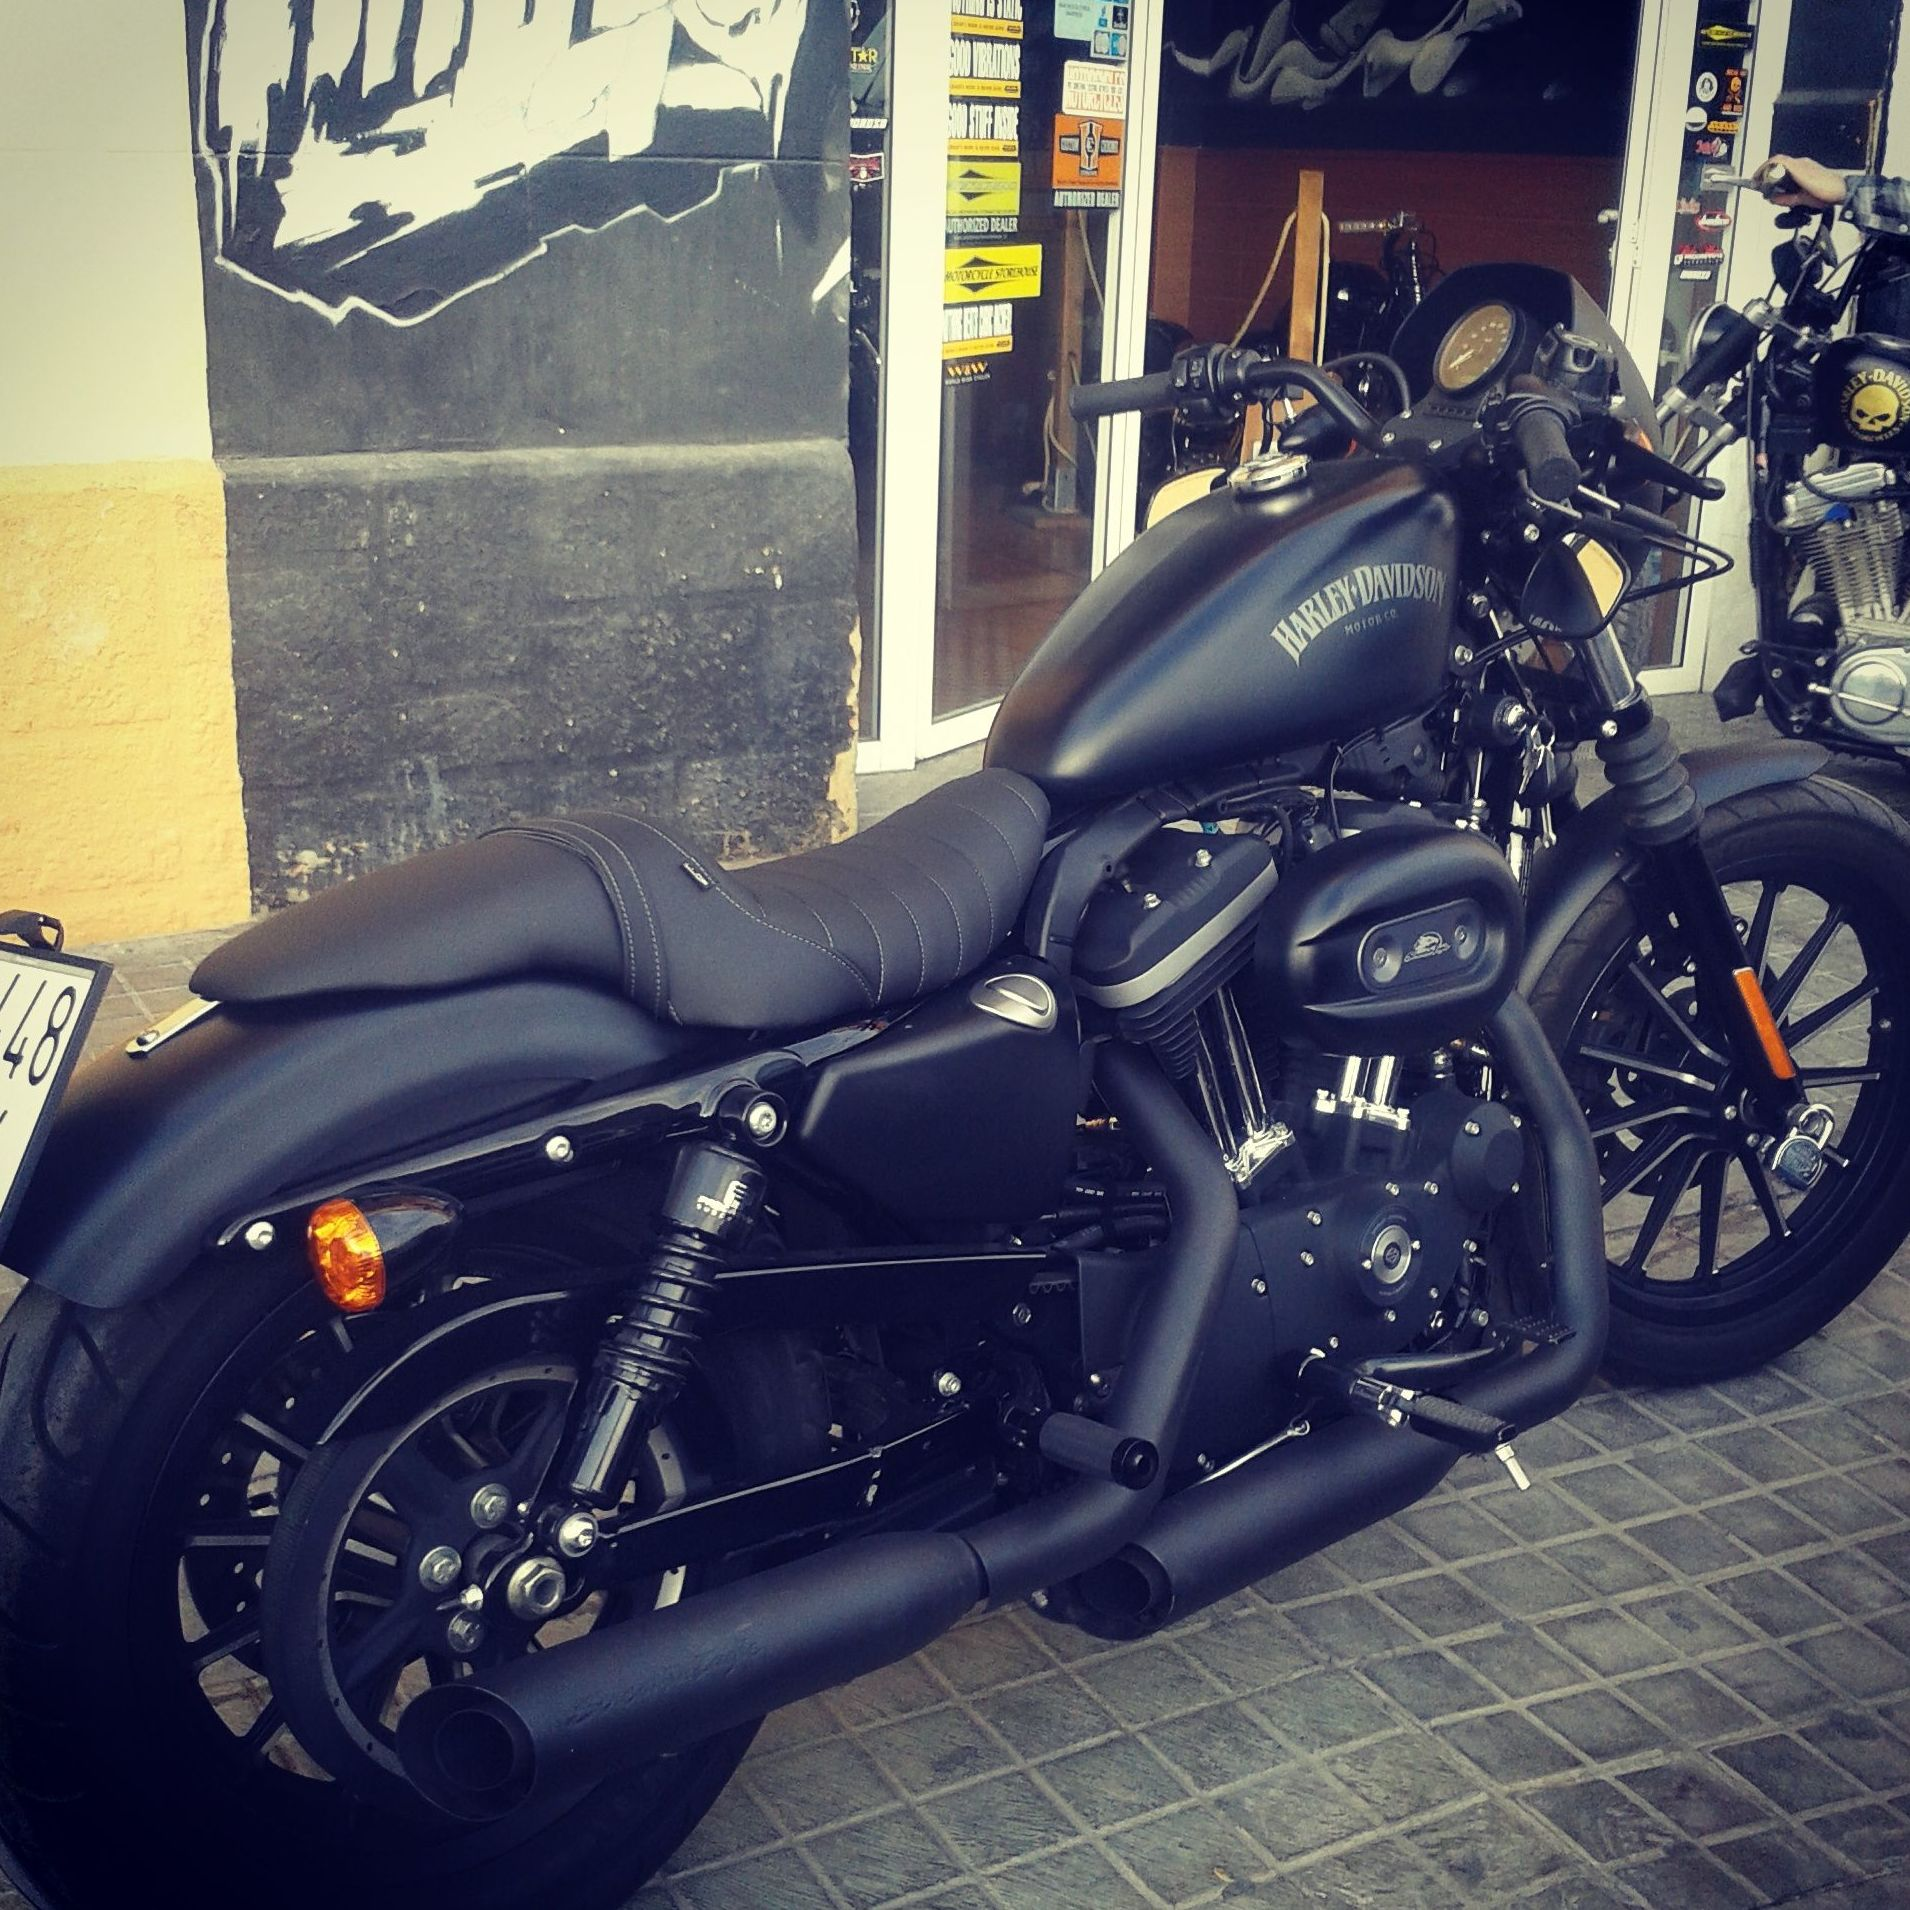 customizar motos, customizar motos valencia, customizar sportster, personalizar motos custom, personalizar harley davidson